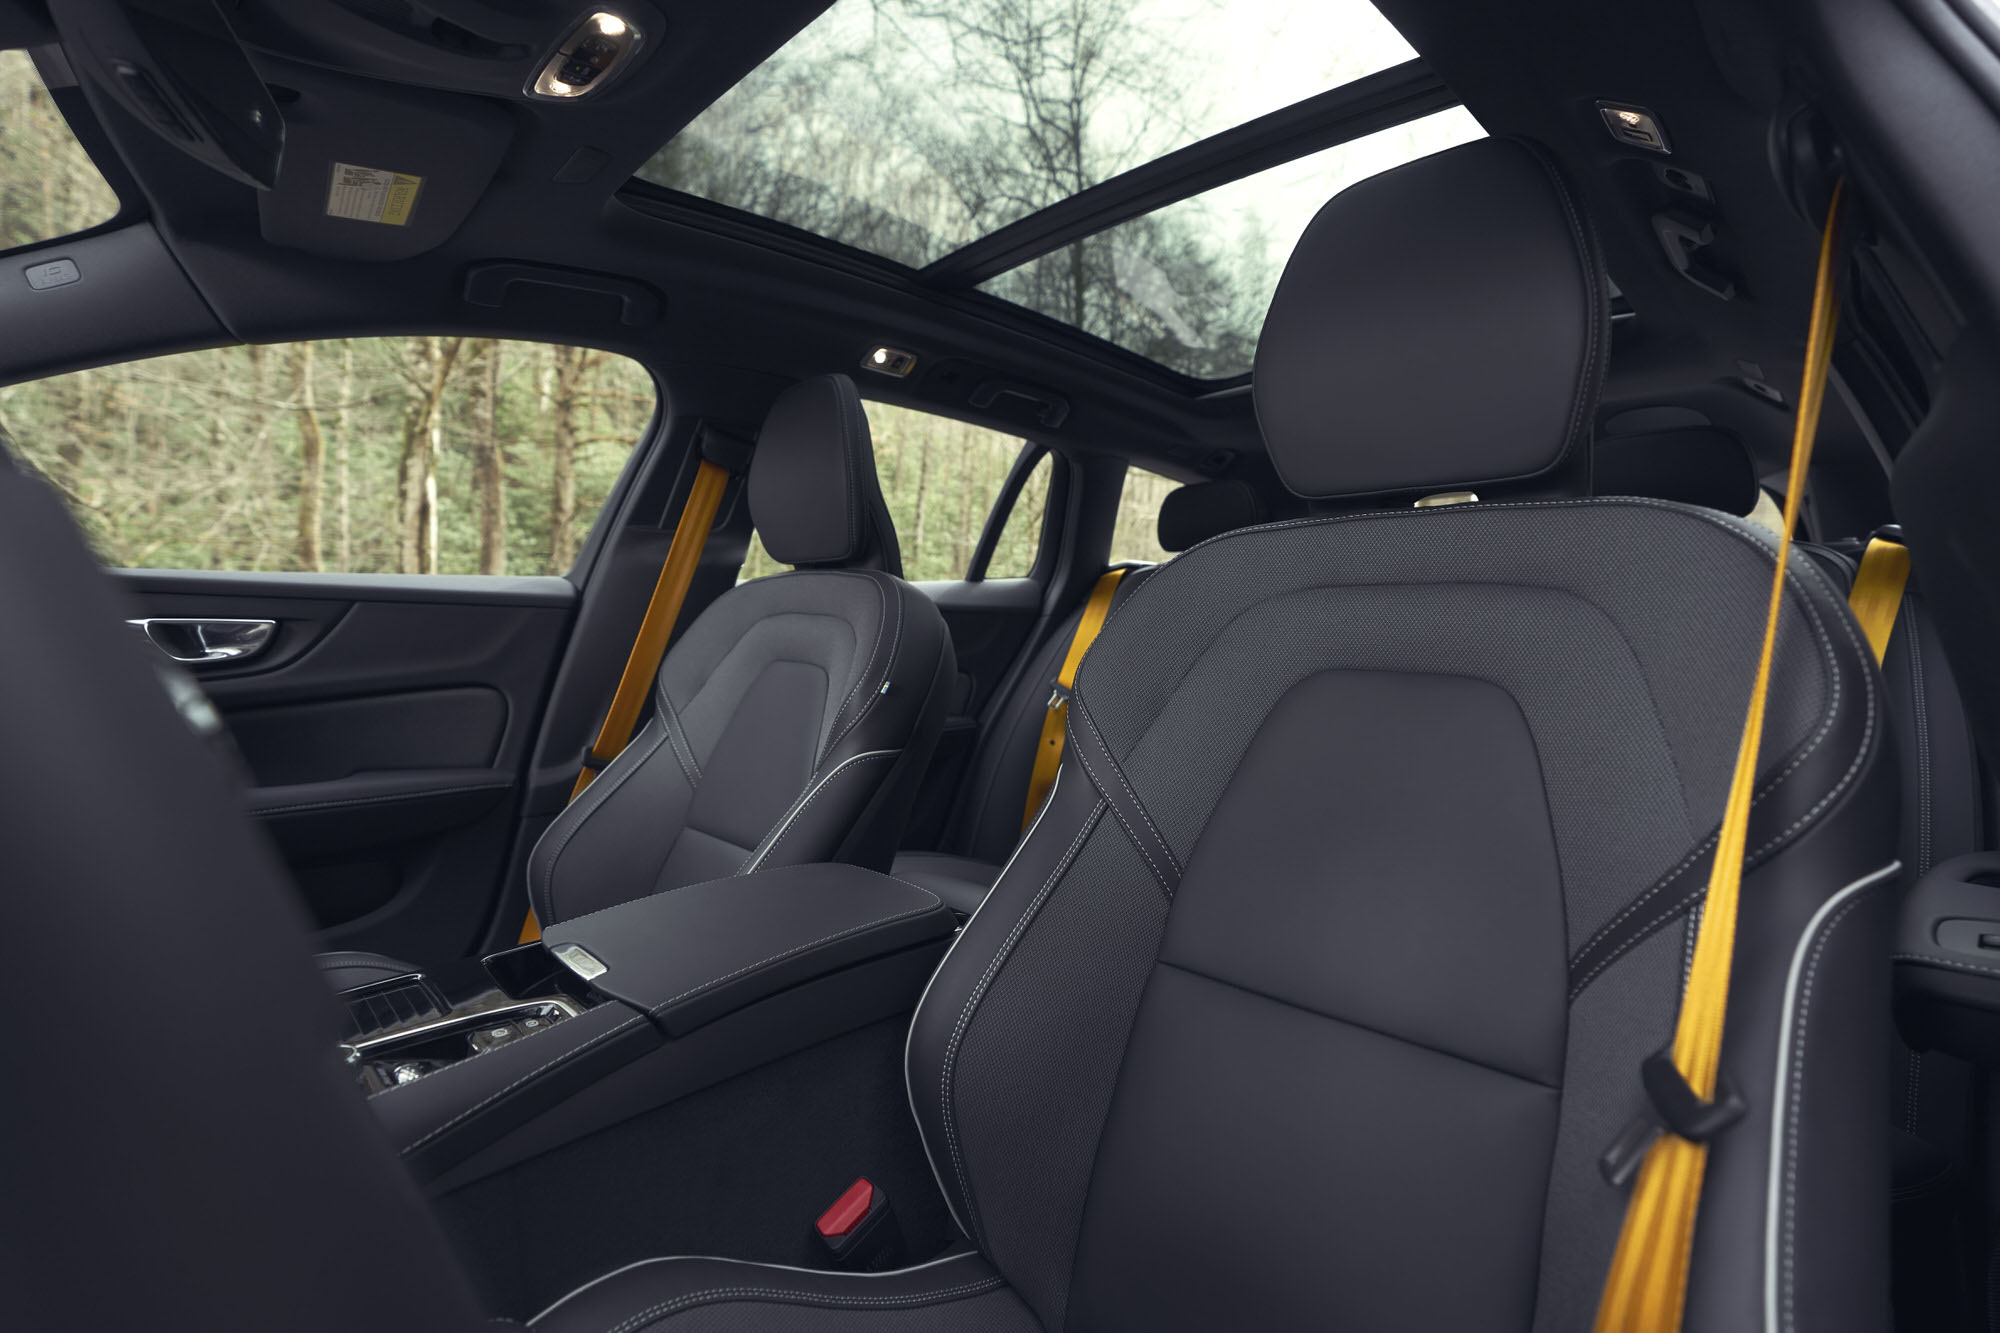 Volvo V60 T8 Polestar interior photographed in the mountains for Road and Track Magazine